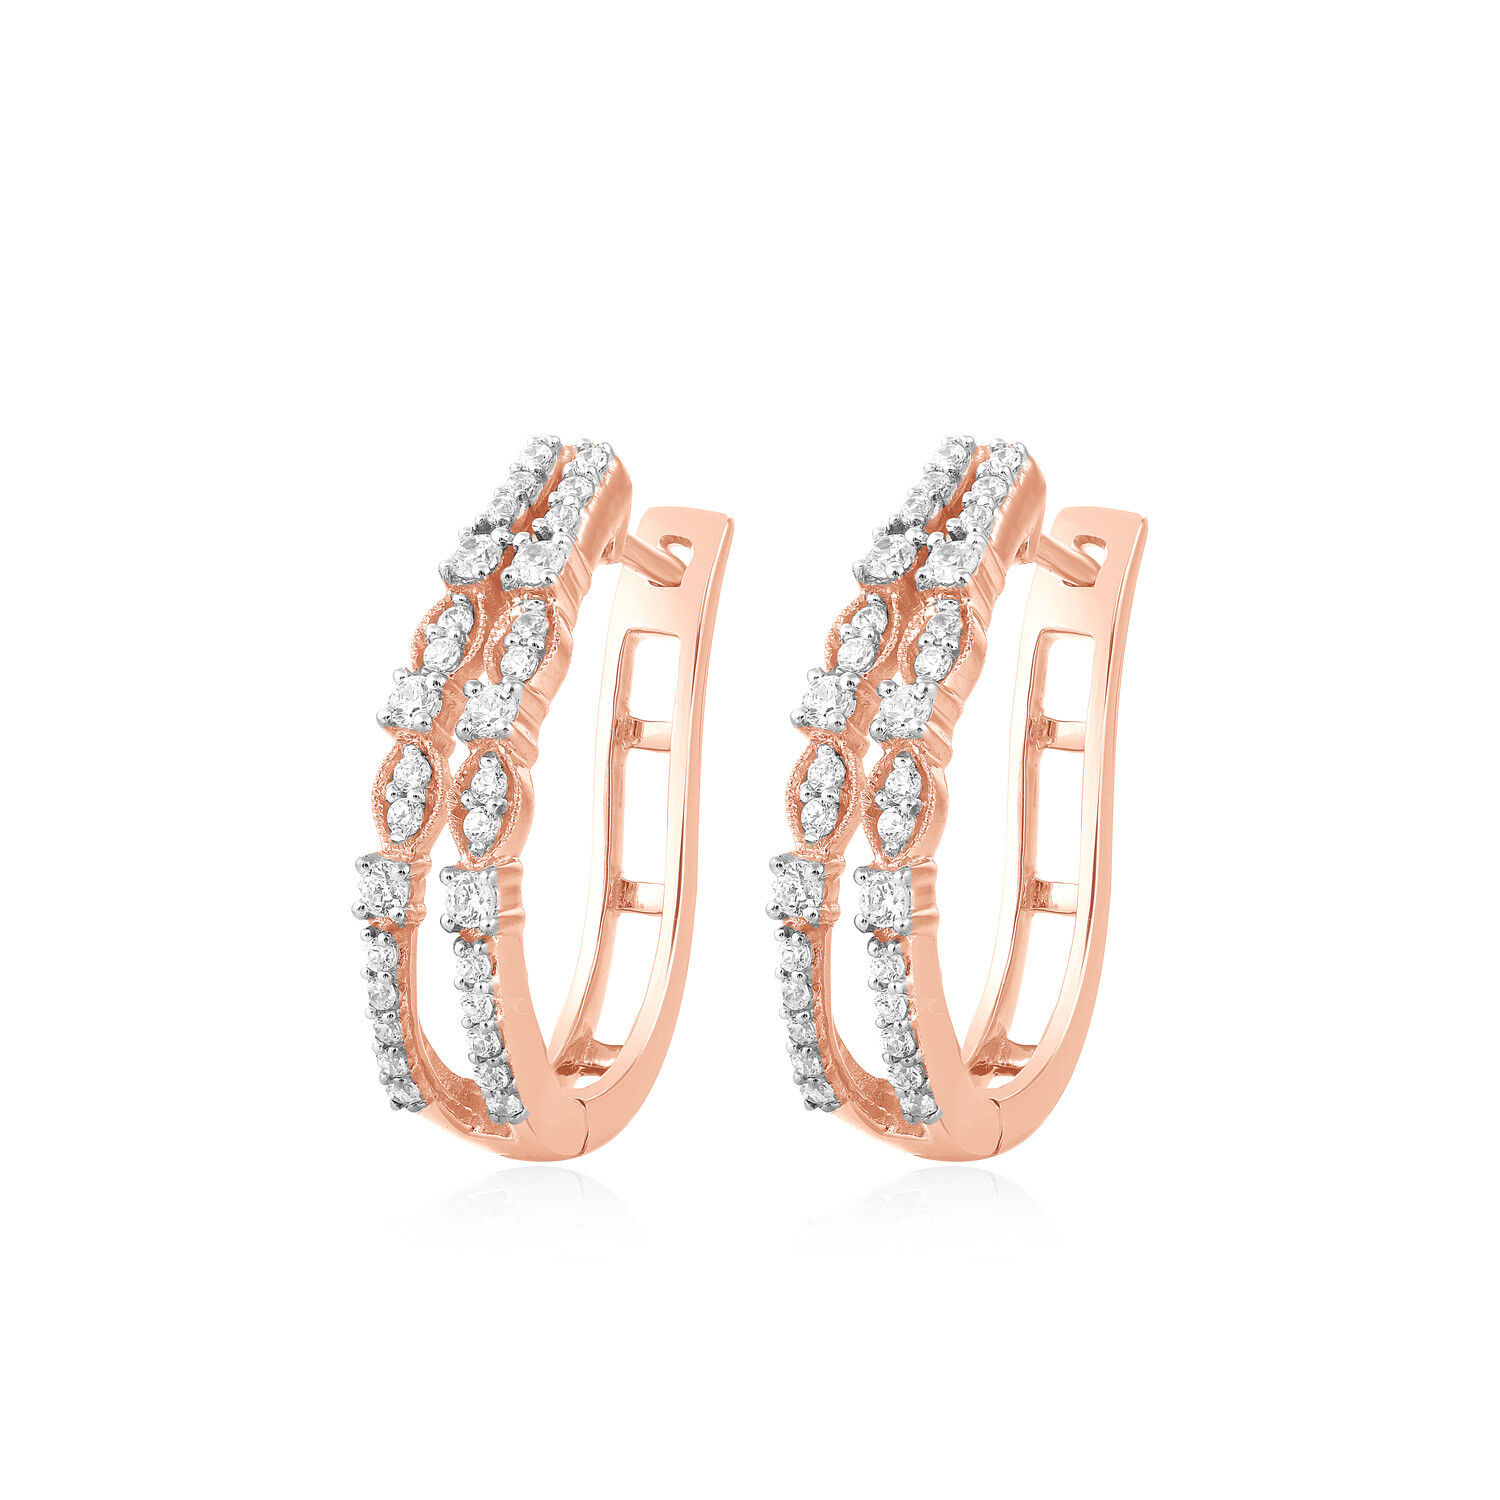 dd1a475ff6277 0.47ct Brilliant Prong Set Natural Diamond Hoop Earrings Solid 10k ...